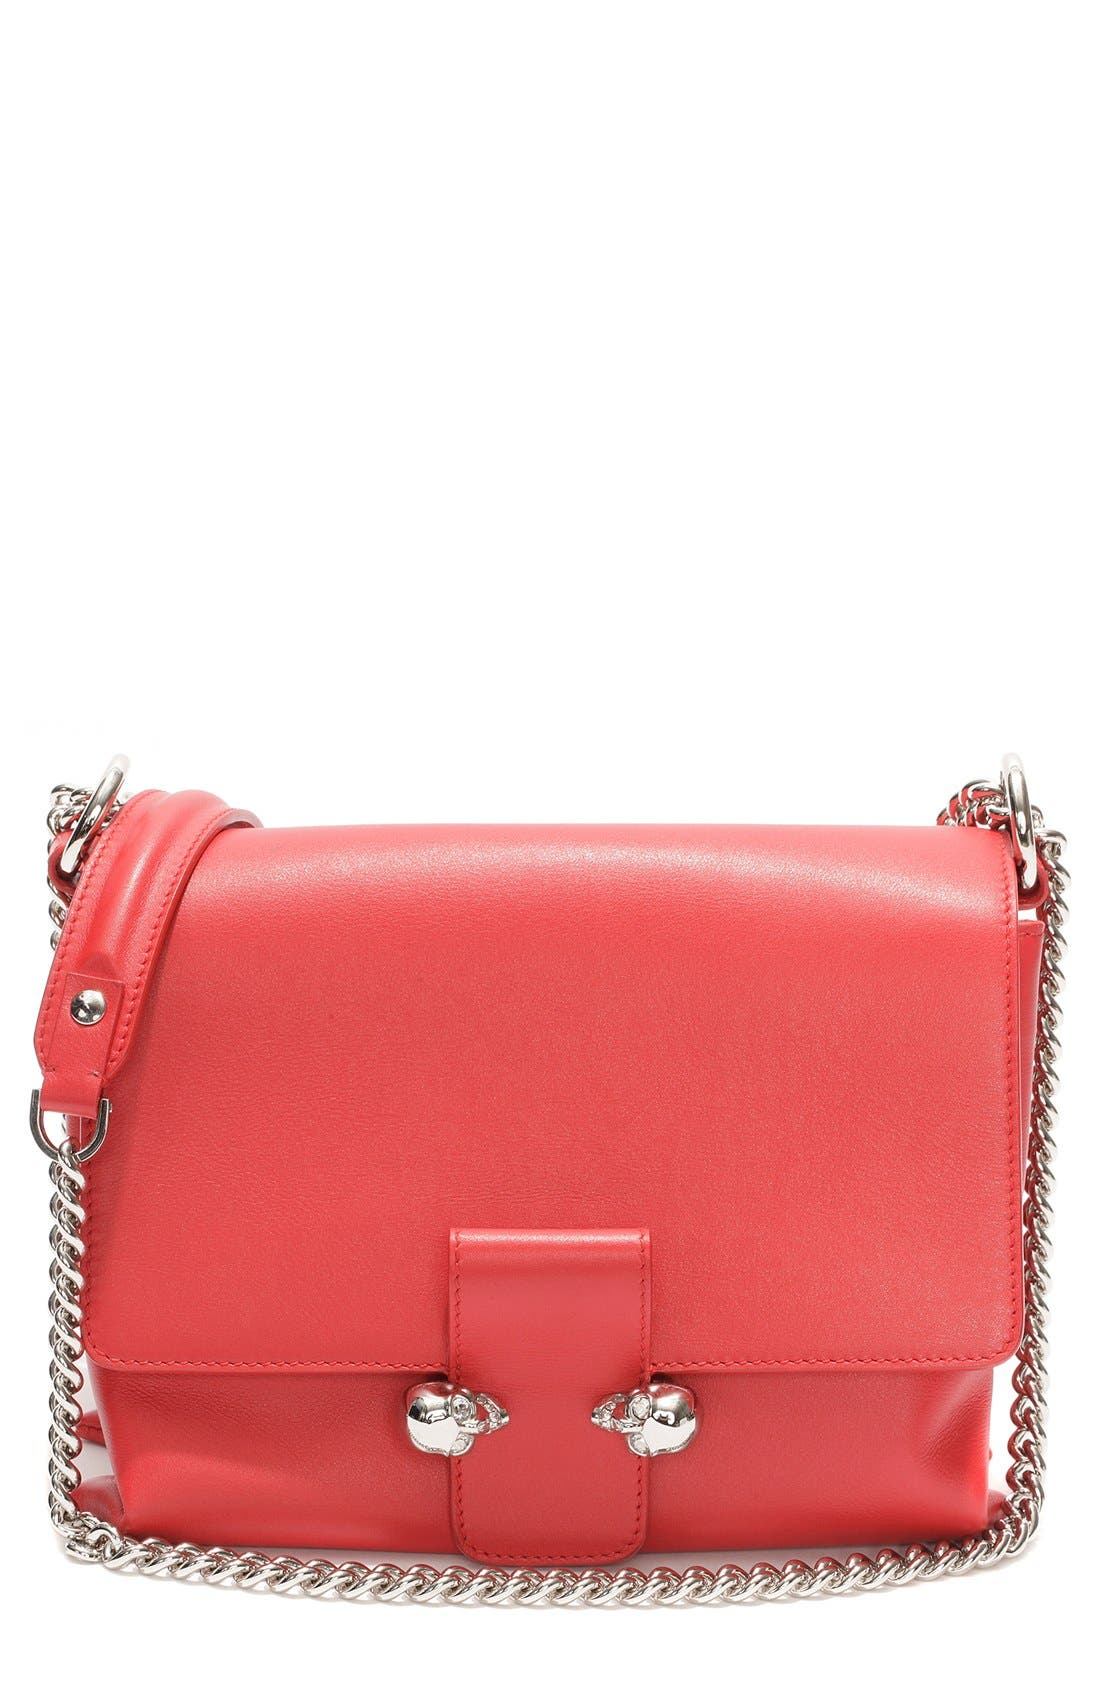 Alternate Image 1 Selected - Alexander McQueen 'Medium Twin Skull' Flap Shoulder Bag